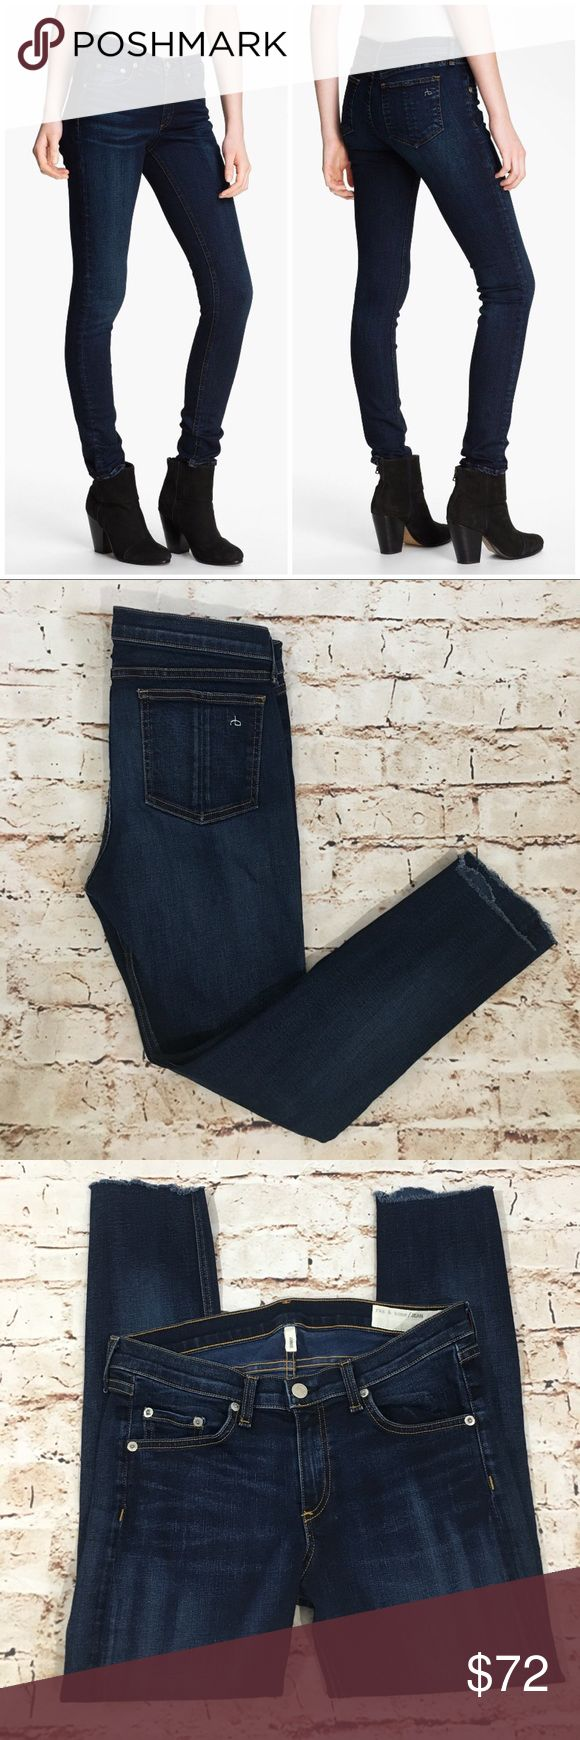 """Rag & Bone Skinny Jeans Woodford Dark Wash Raw Hem MSRP: $198 - SOLD OUT ONLINE Size 29= 8  29"""" waist  Skinny-leg stretch jeans are cut from dark-rinse stretch denim detailed with fading. * 24"""" inseam; 10 1/2"""" leg opening; 9"""" front rise; 13"""" back rise. * Mid rise fit. * Zip fly with button closure. * Five-pocket style. * 98% cotton, 2% polyurethane. * Machine wash cold; line dry. * Made in the USA of imported fabric. * Style: W1502K520 * Color: WOODFORD * Cut: 7190 * Raw distressed fraying…"""